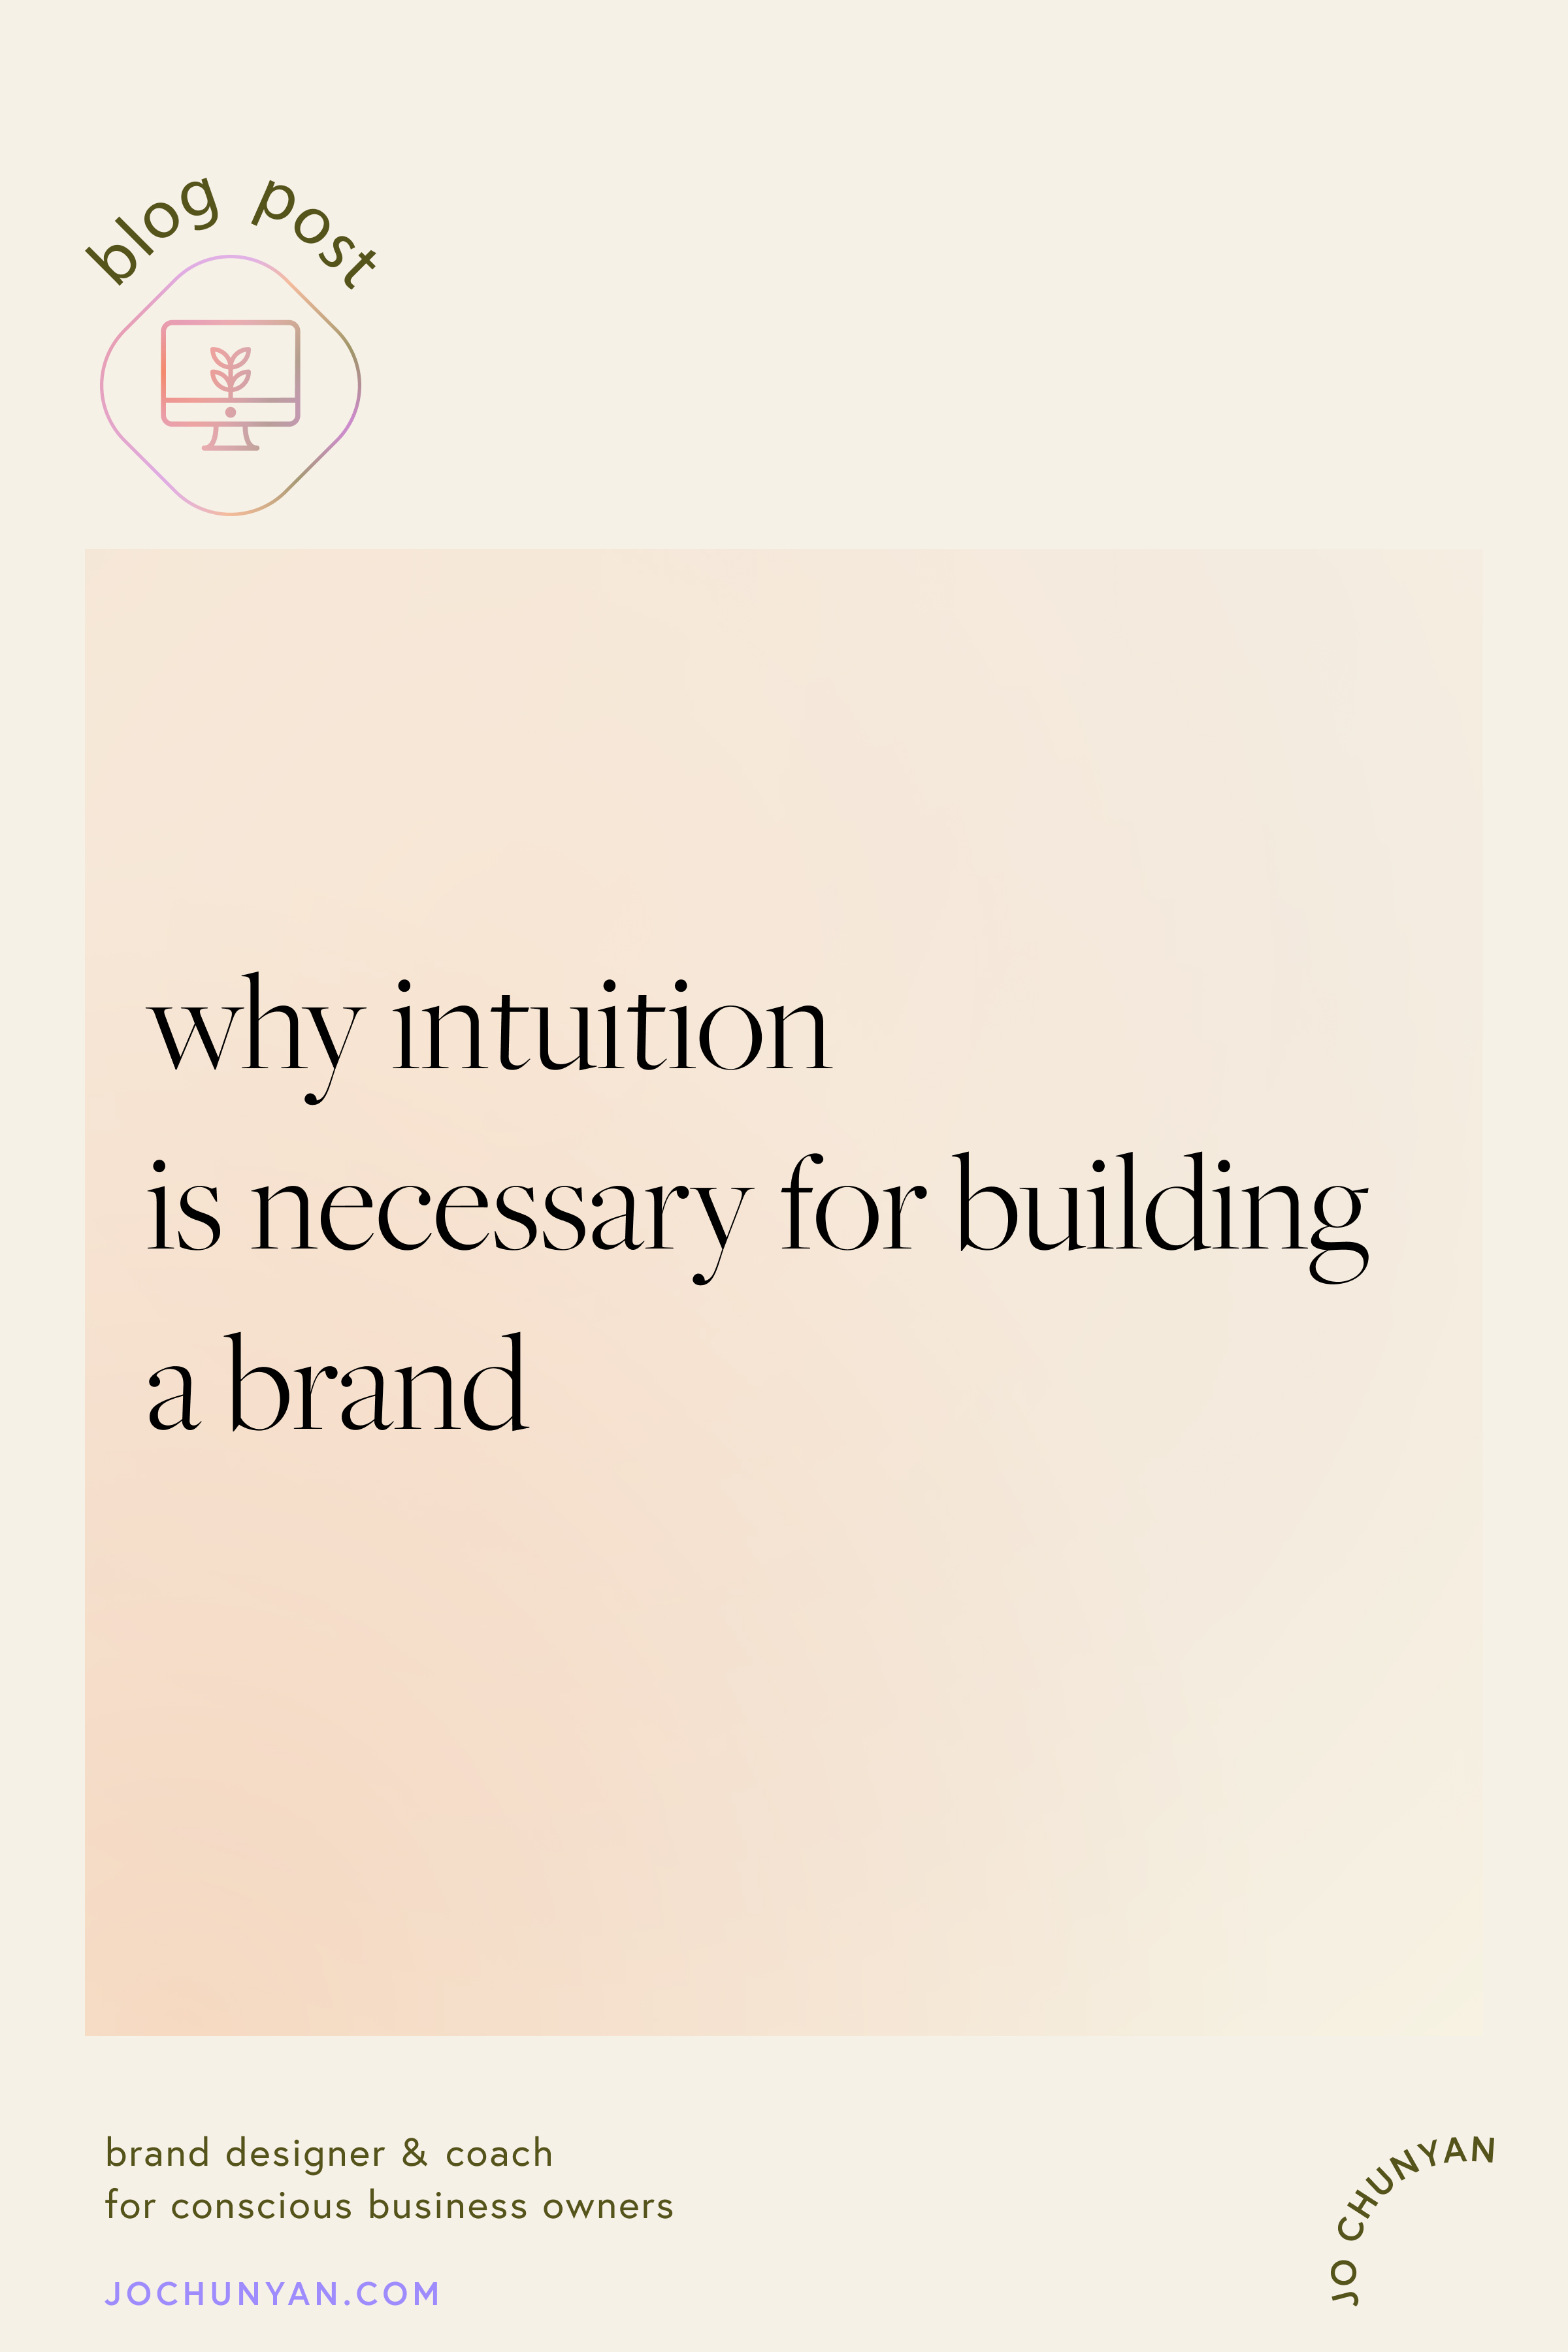 Why intuition is necessary for building a brand